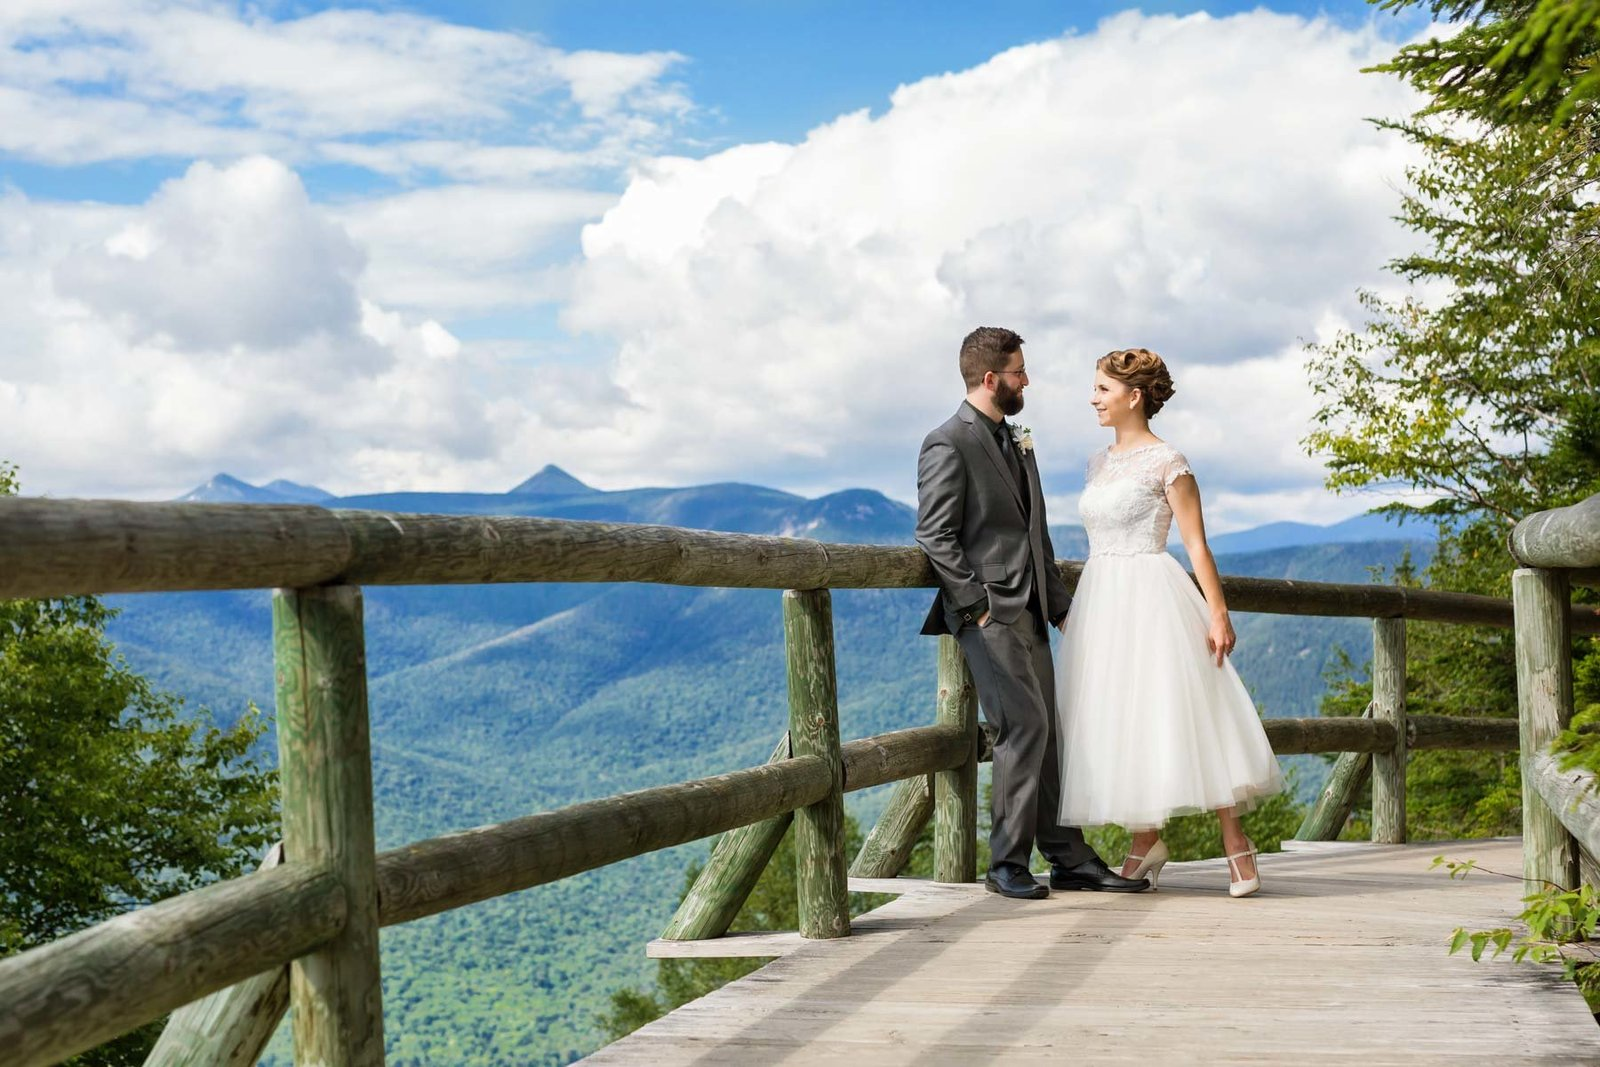 Loon-Mountain-Resort-New-Hampshire-Wedding-Image-IAMSARAHV-Photography-148-SV2_9247-148SM